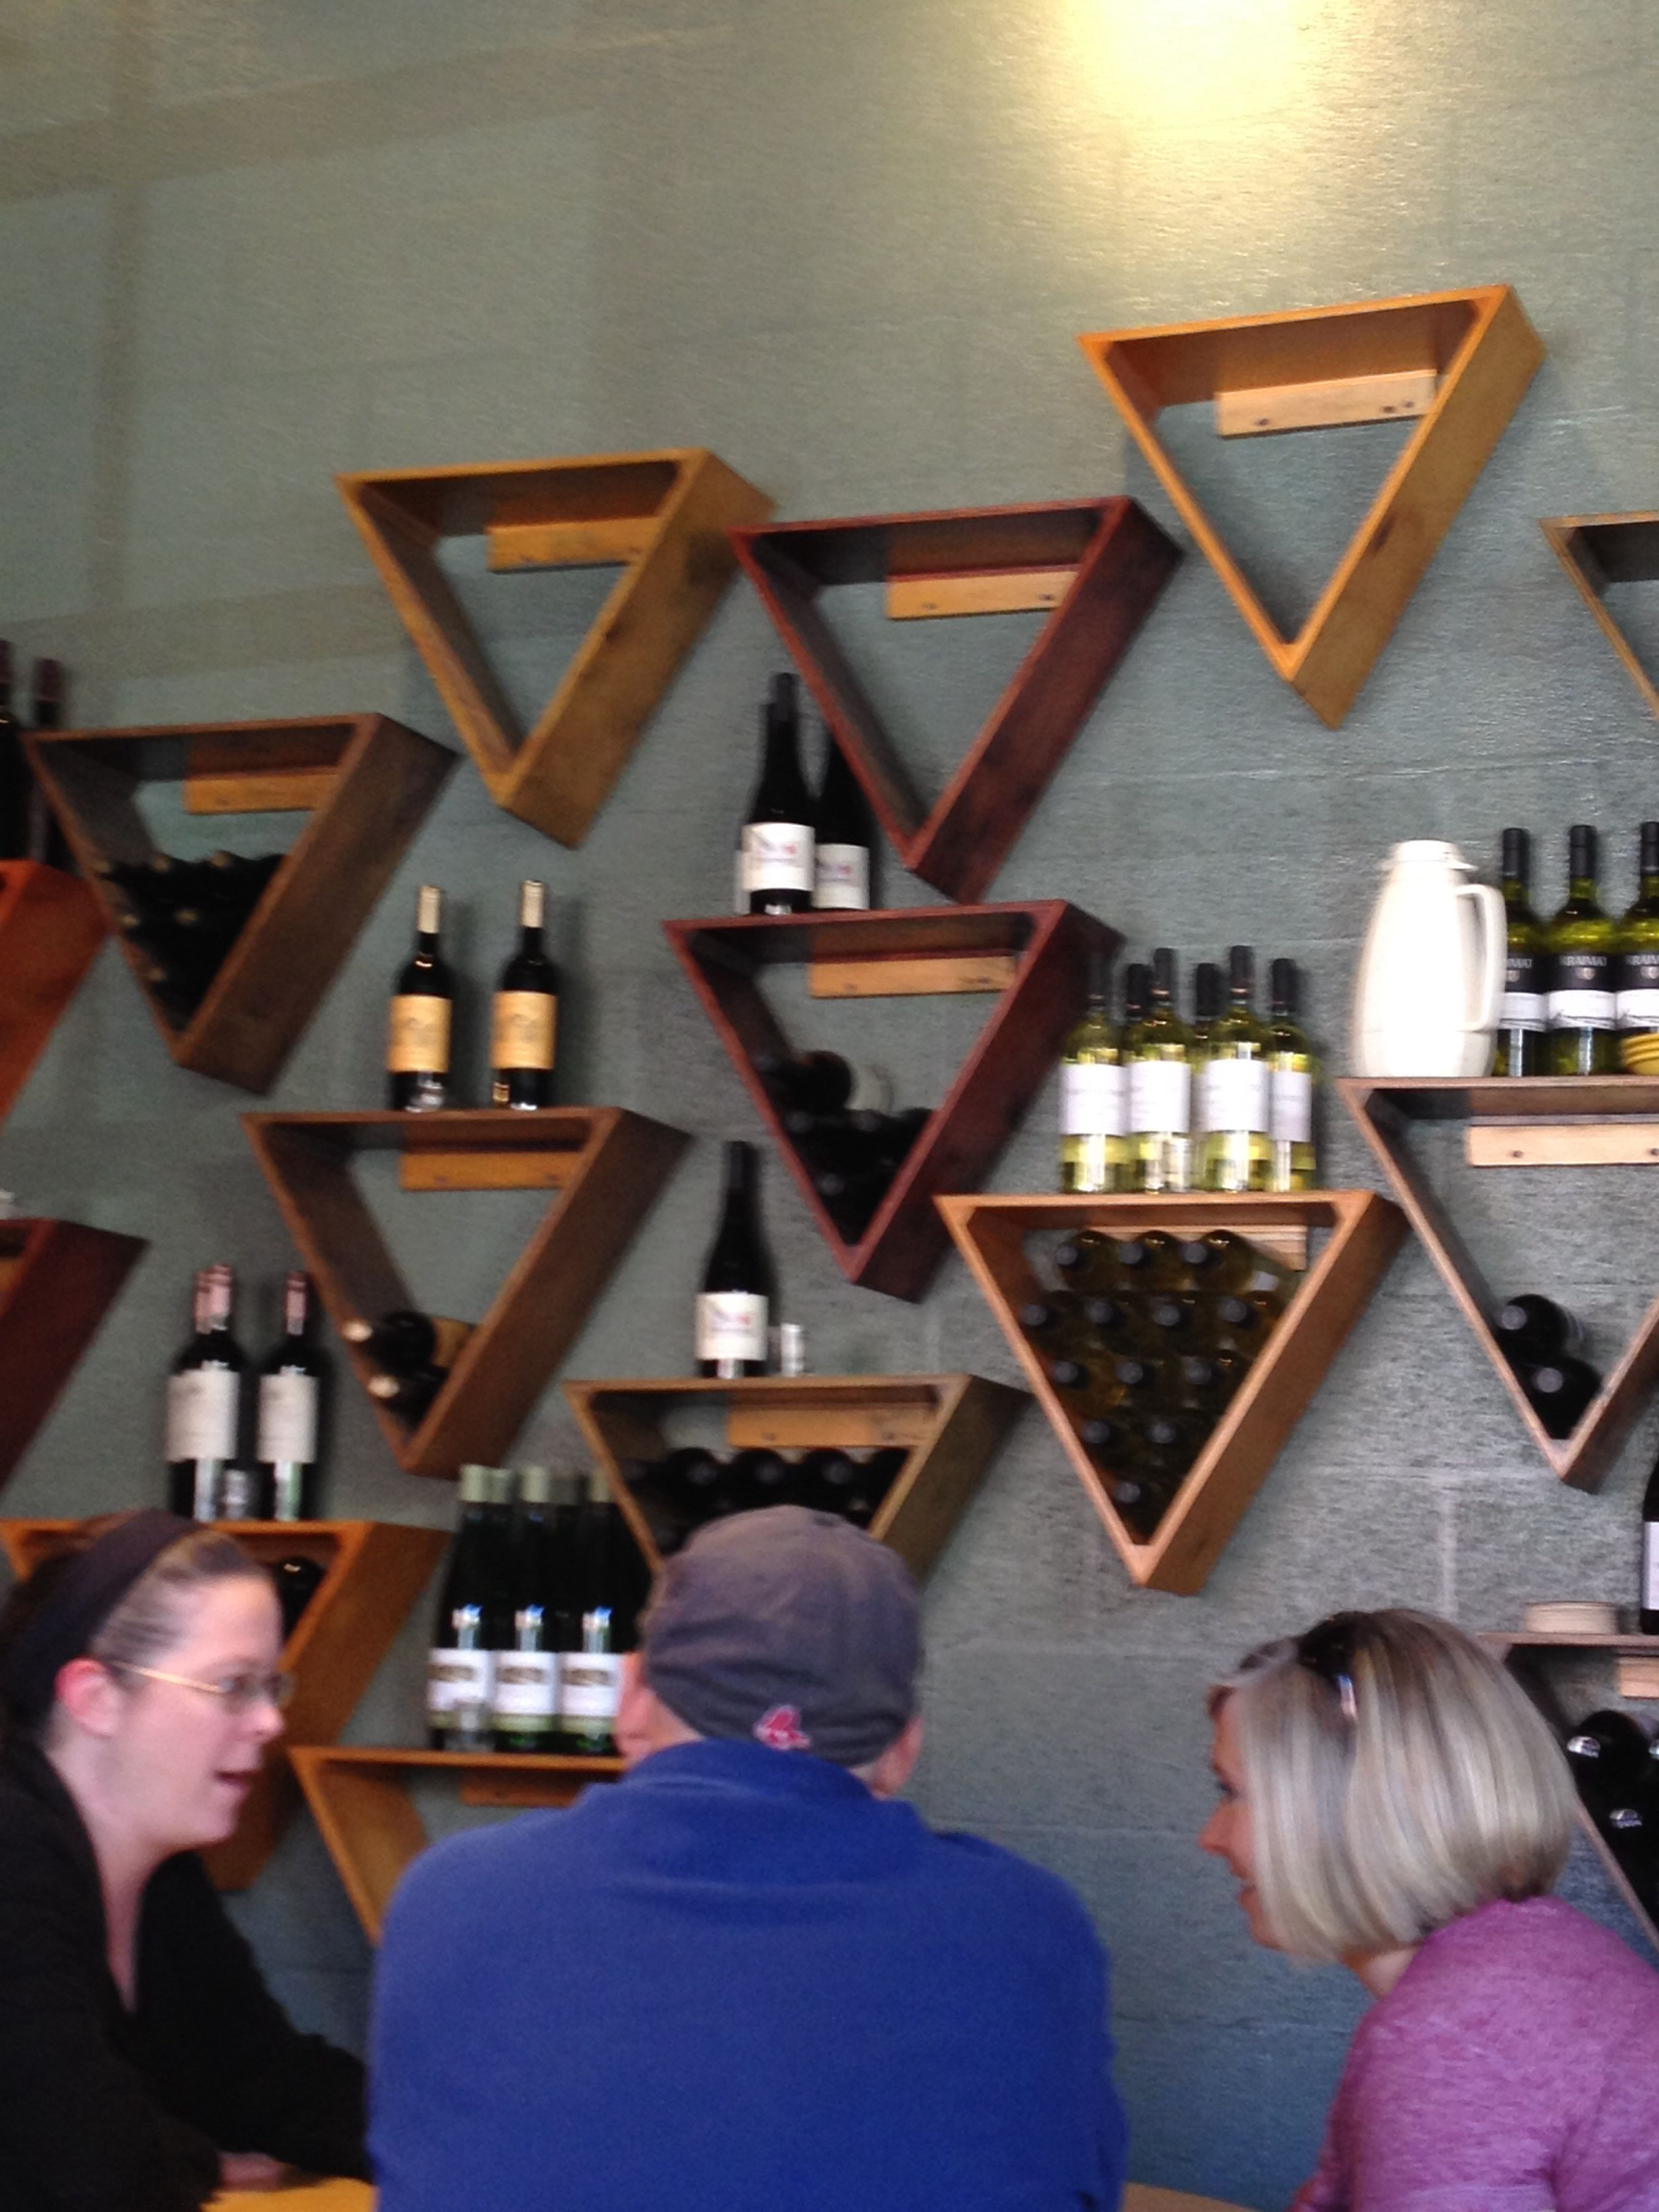 I Think Every Future Home Should Have A Wine Triangle